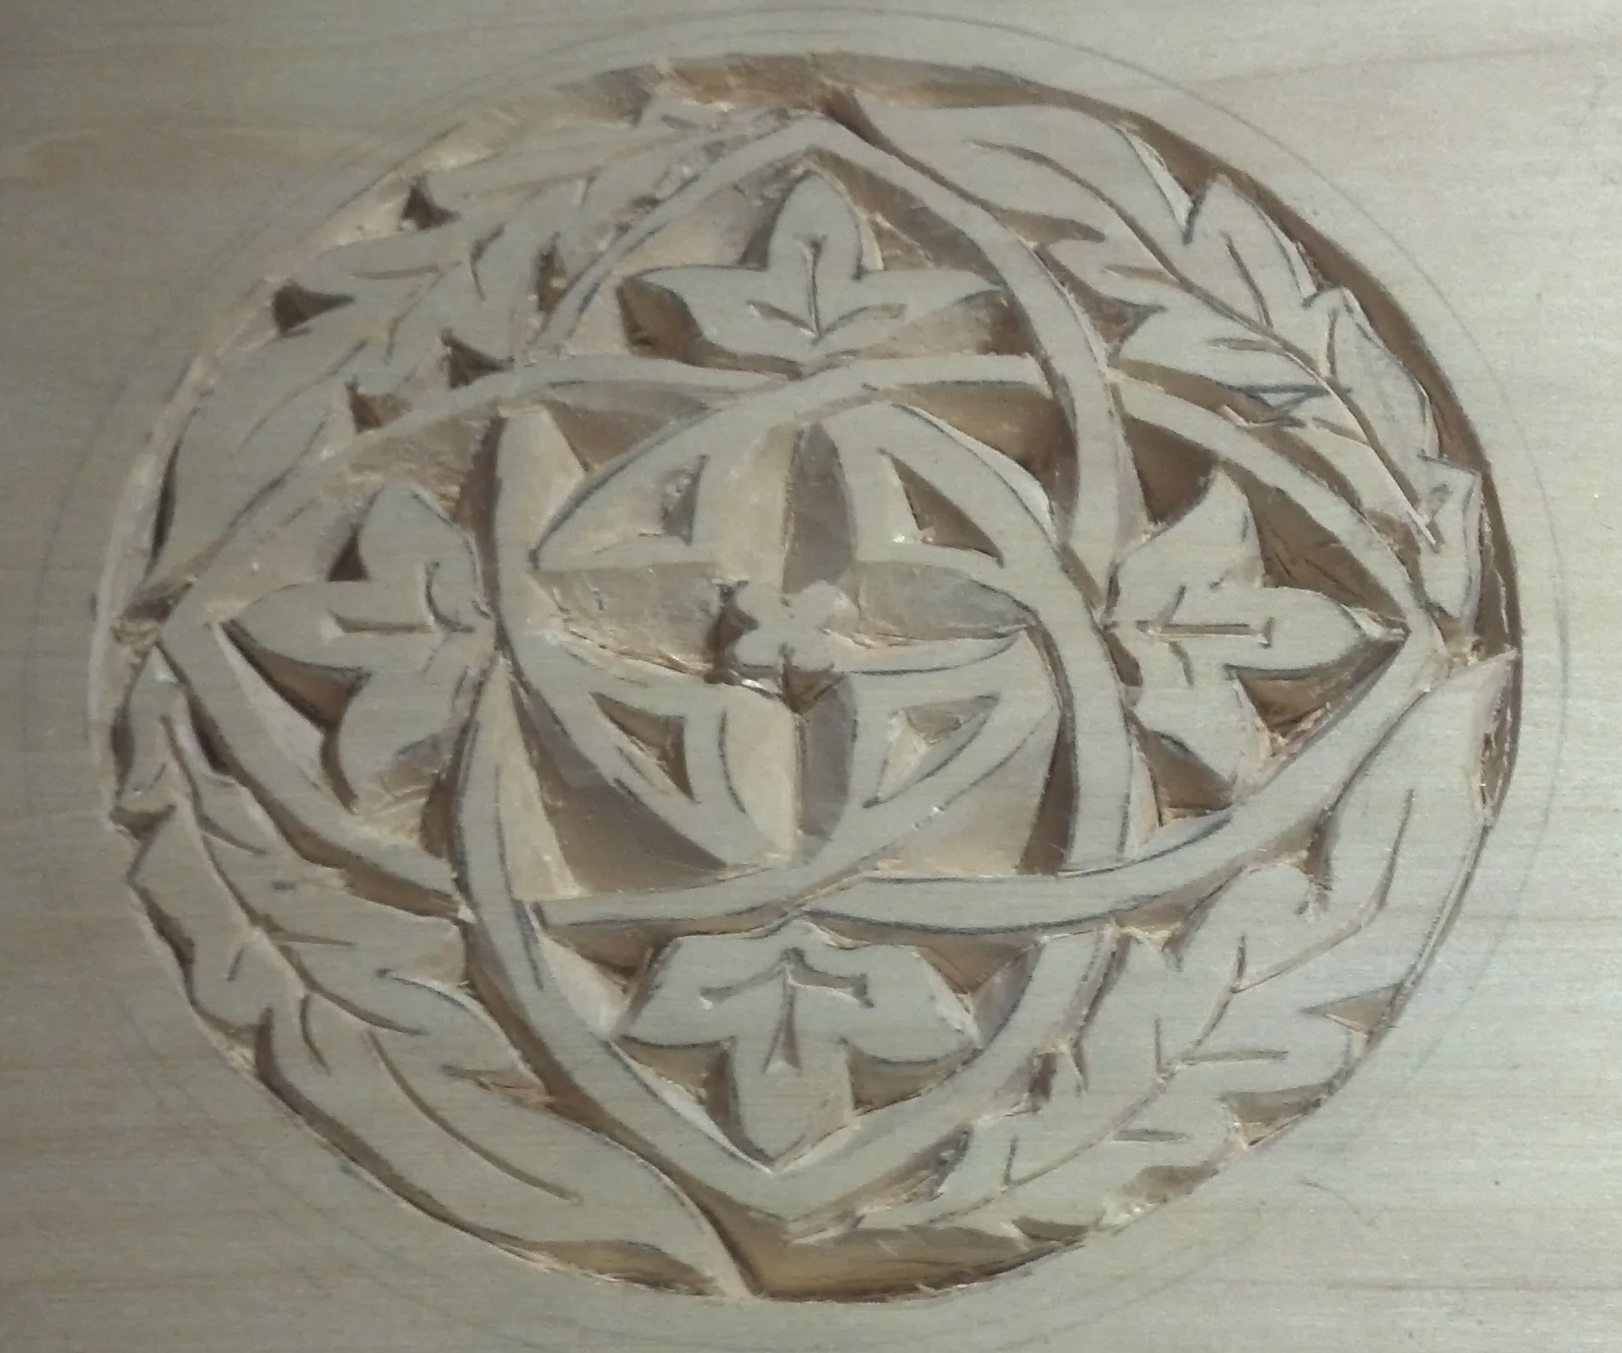 Hobby chip carving